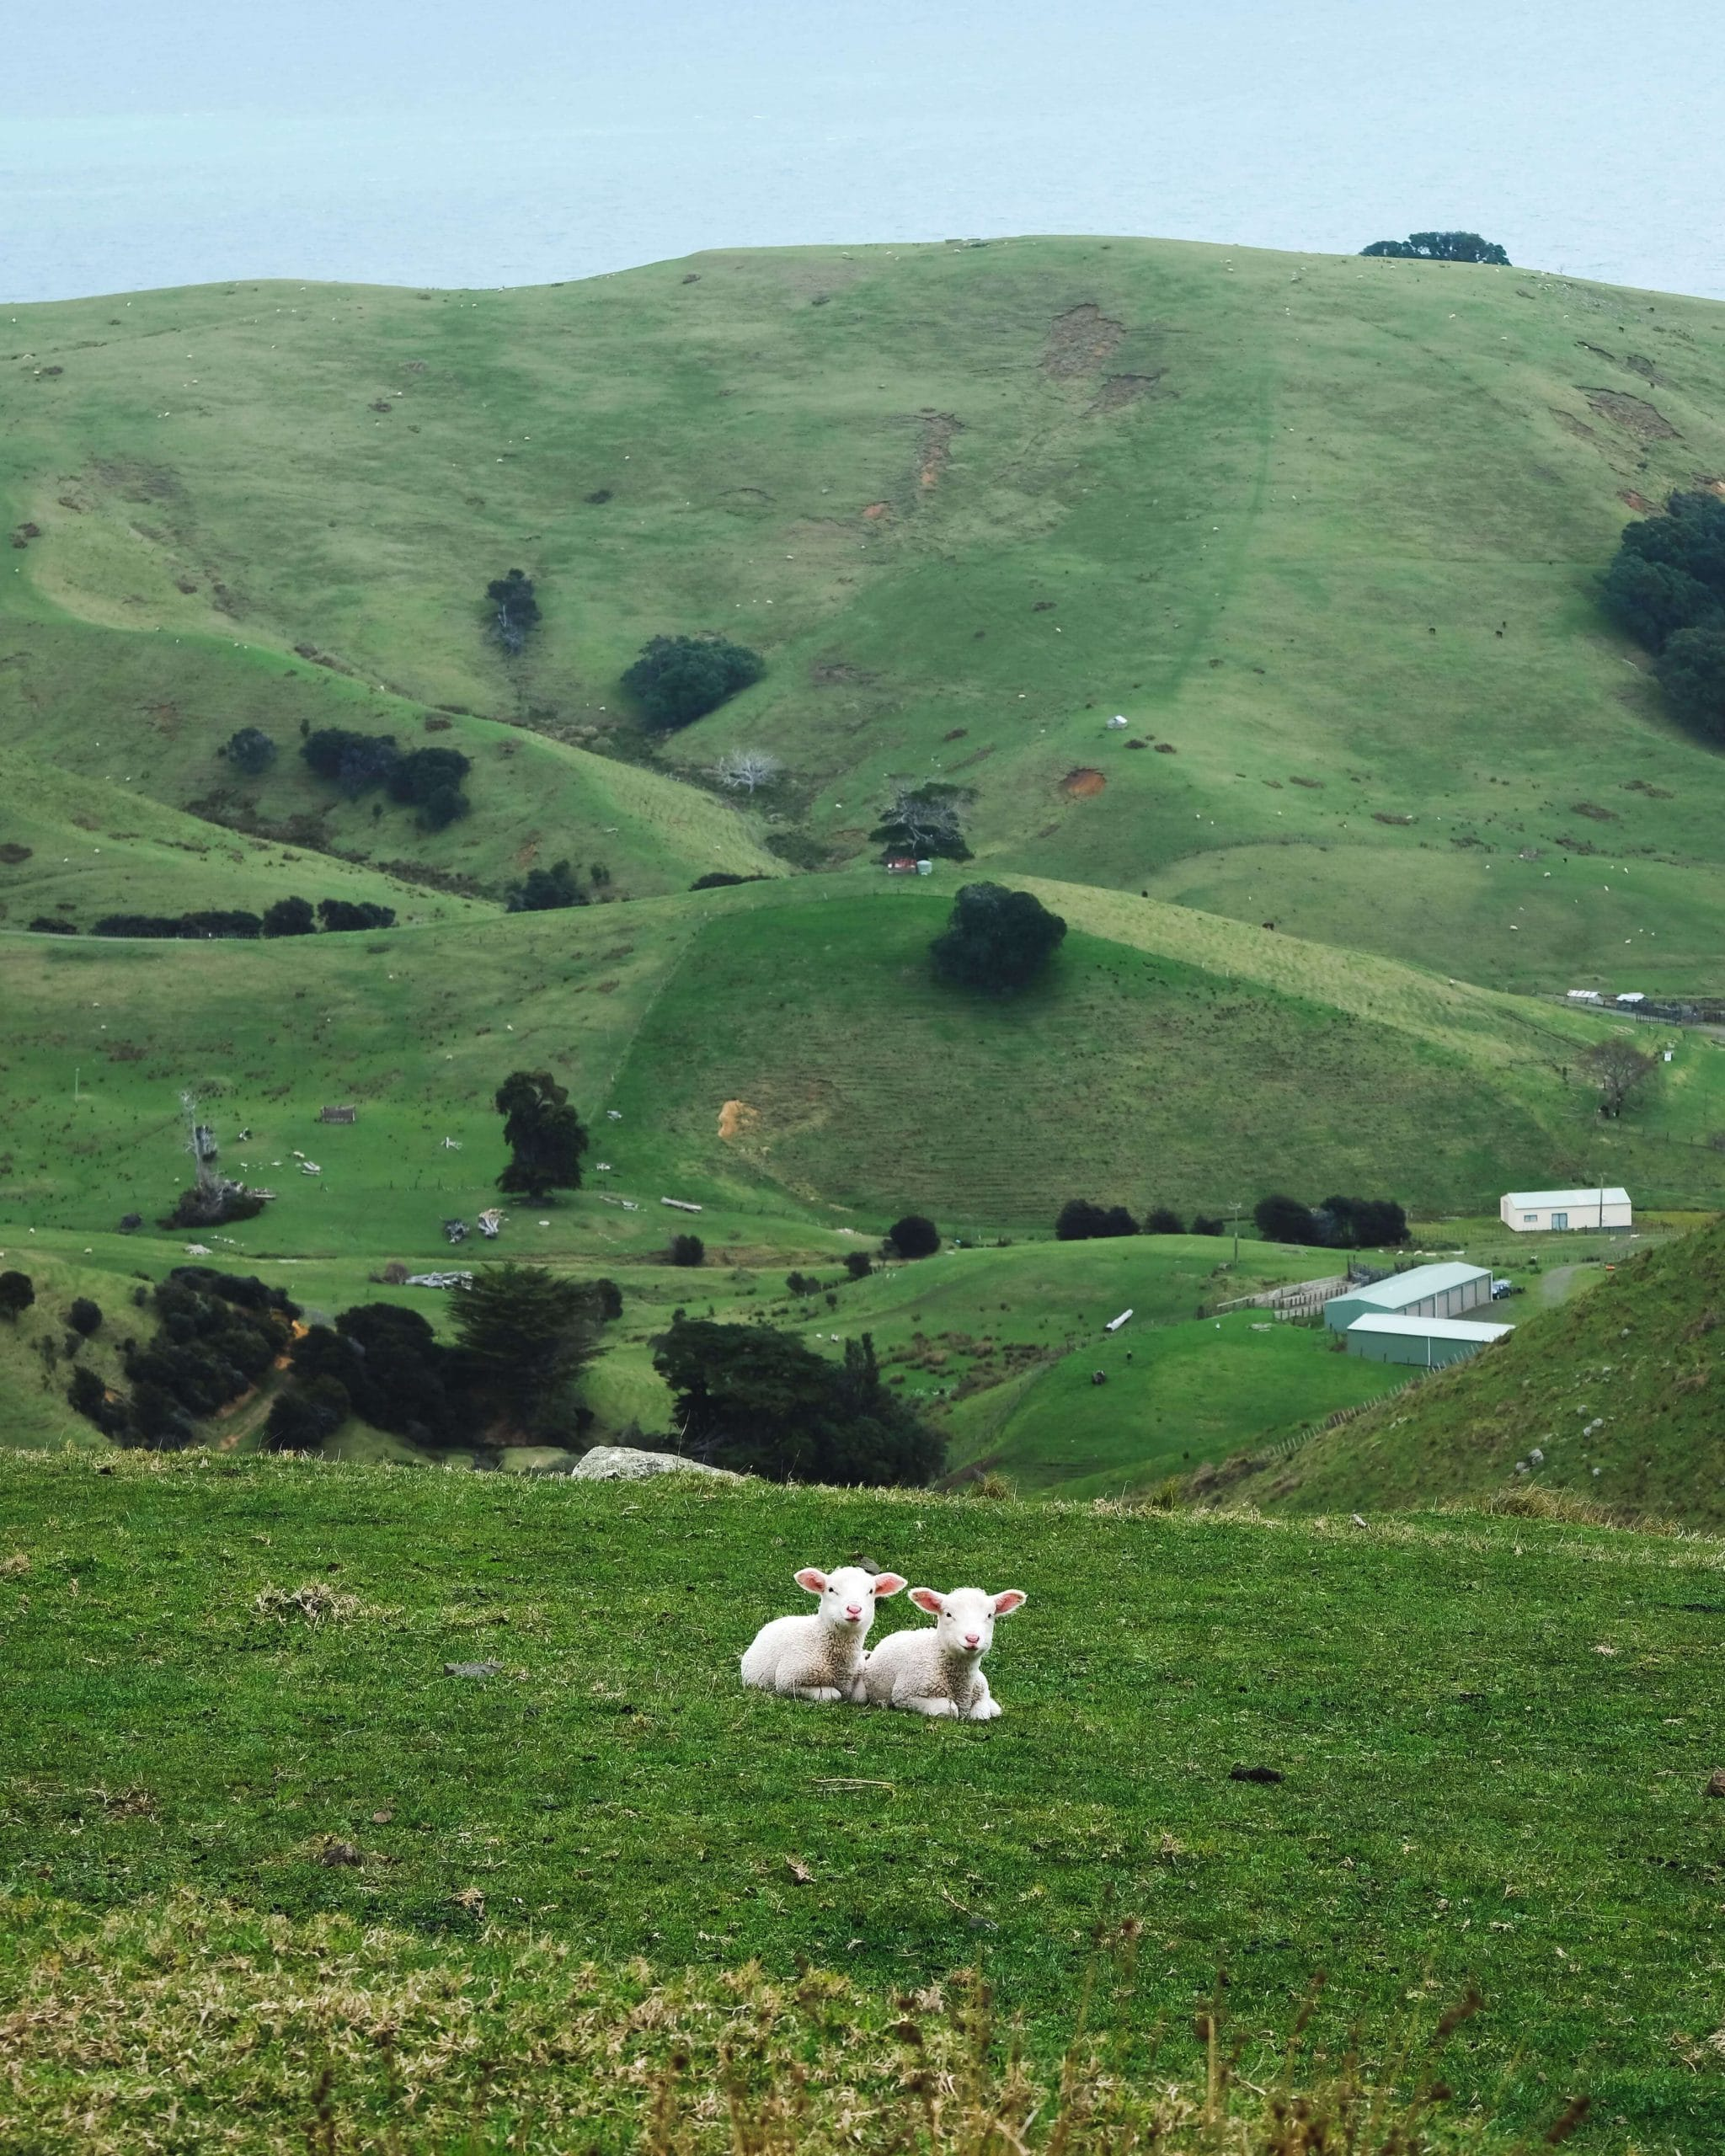 Spring is the best time to visit New Zealand because its lambing season